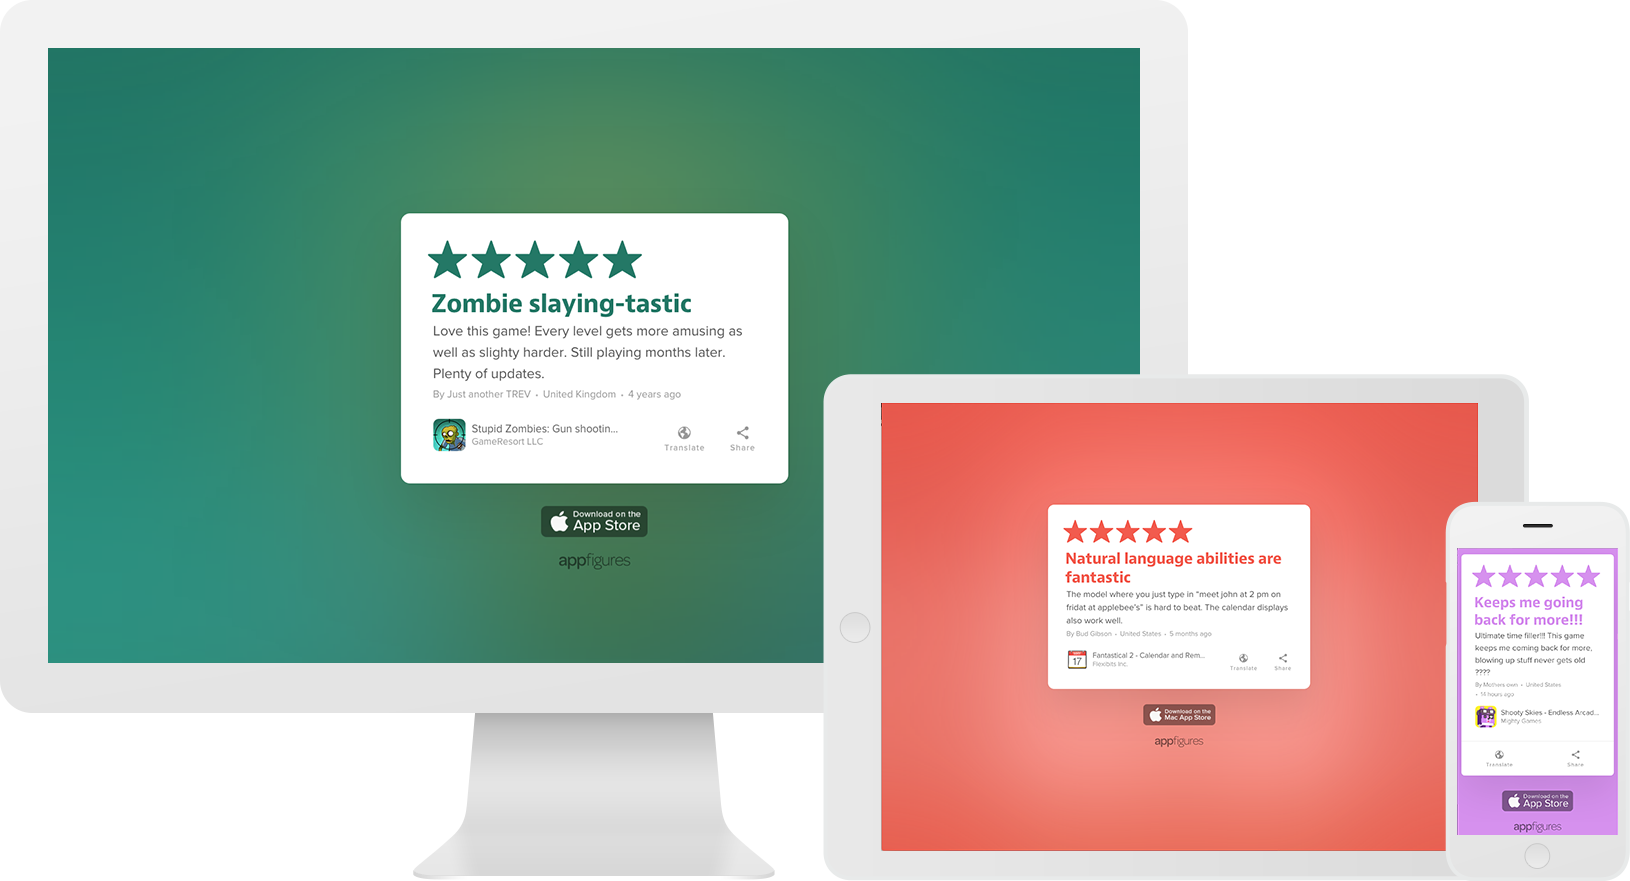 Share app store reviews with Review Cards from appFigures